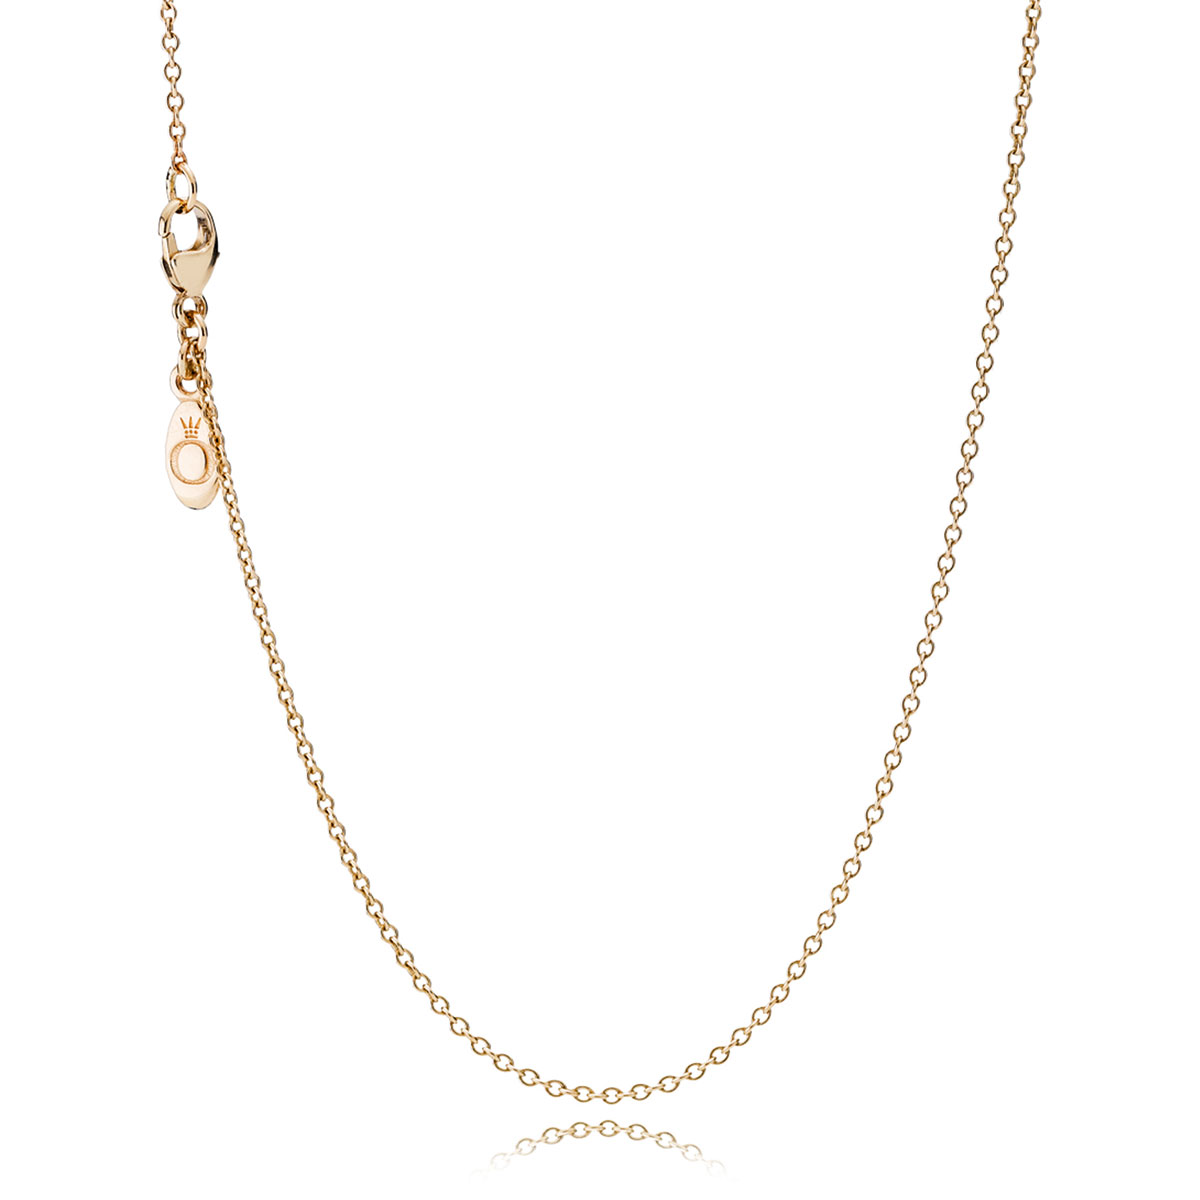 PANDORA 14K Necklace Chain-801-705